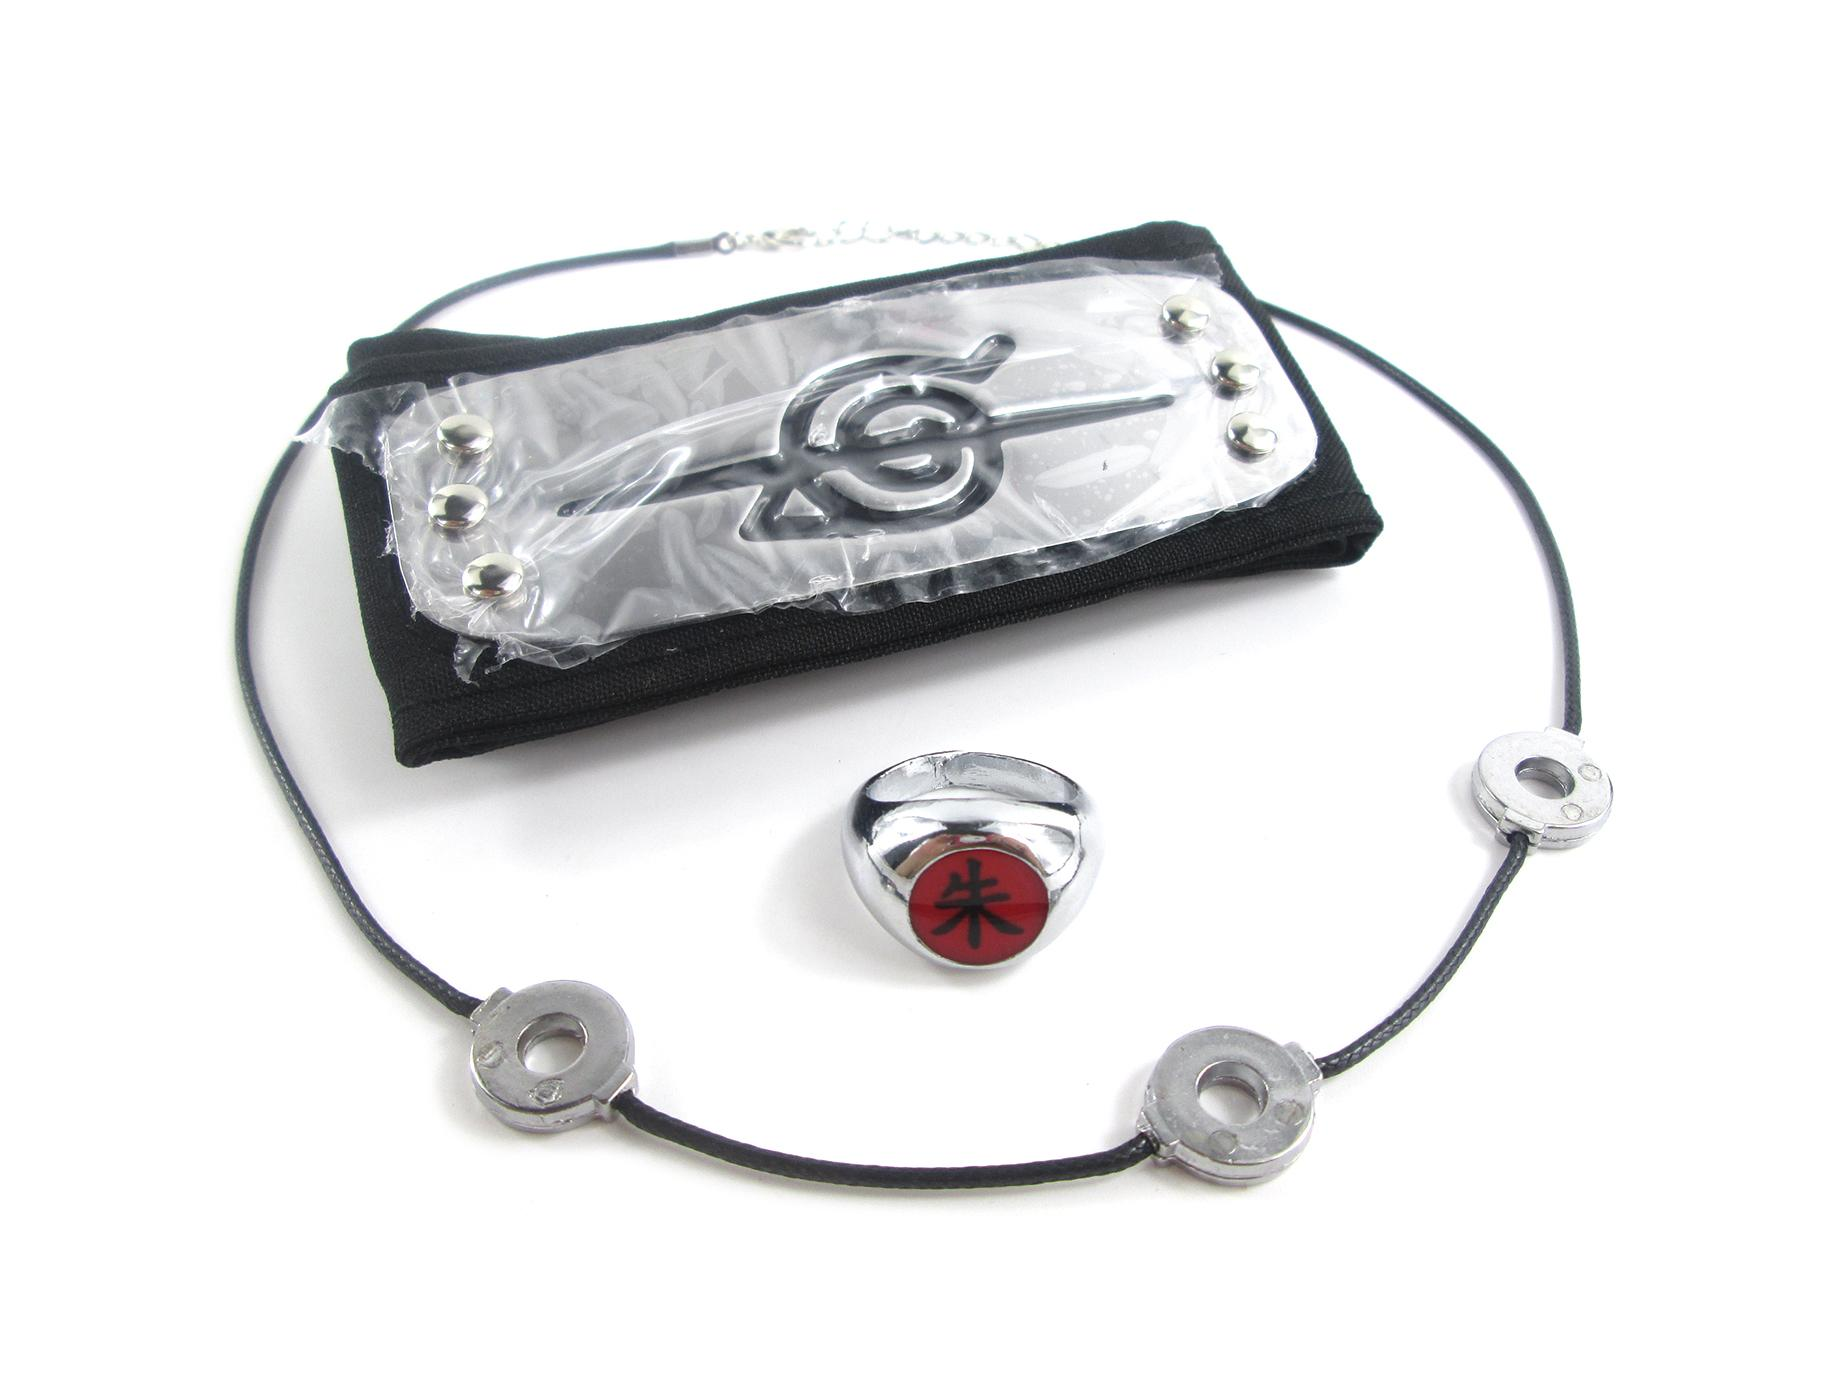 Free Shipping Naruto Ninja Uchiha Itachi Akatsuki Headband+Necklace+Ring for cosplay party or halloween